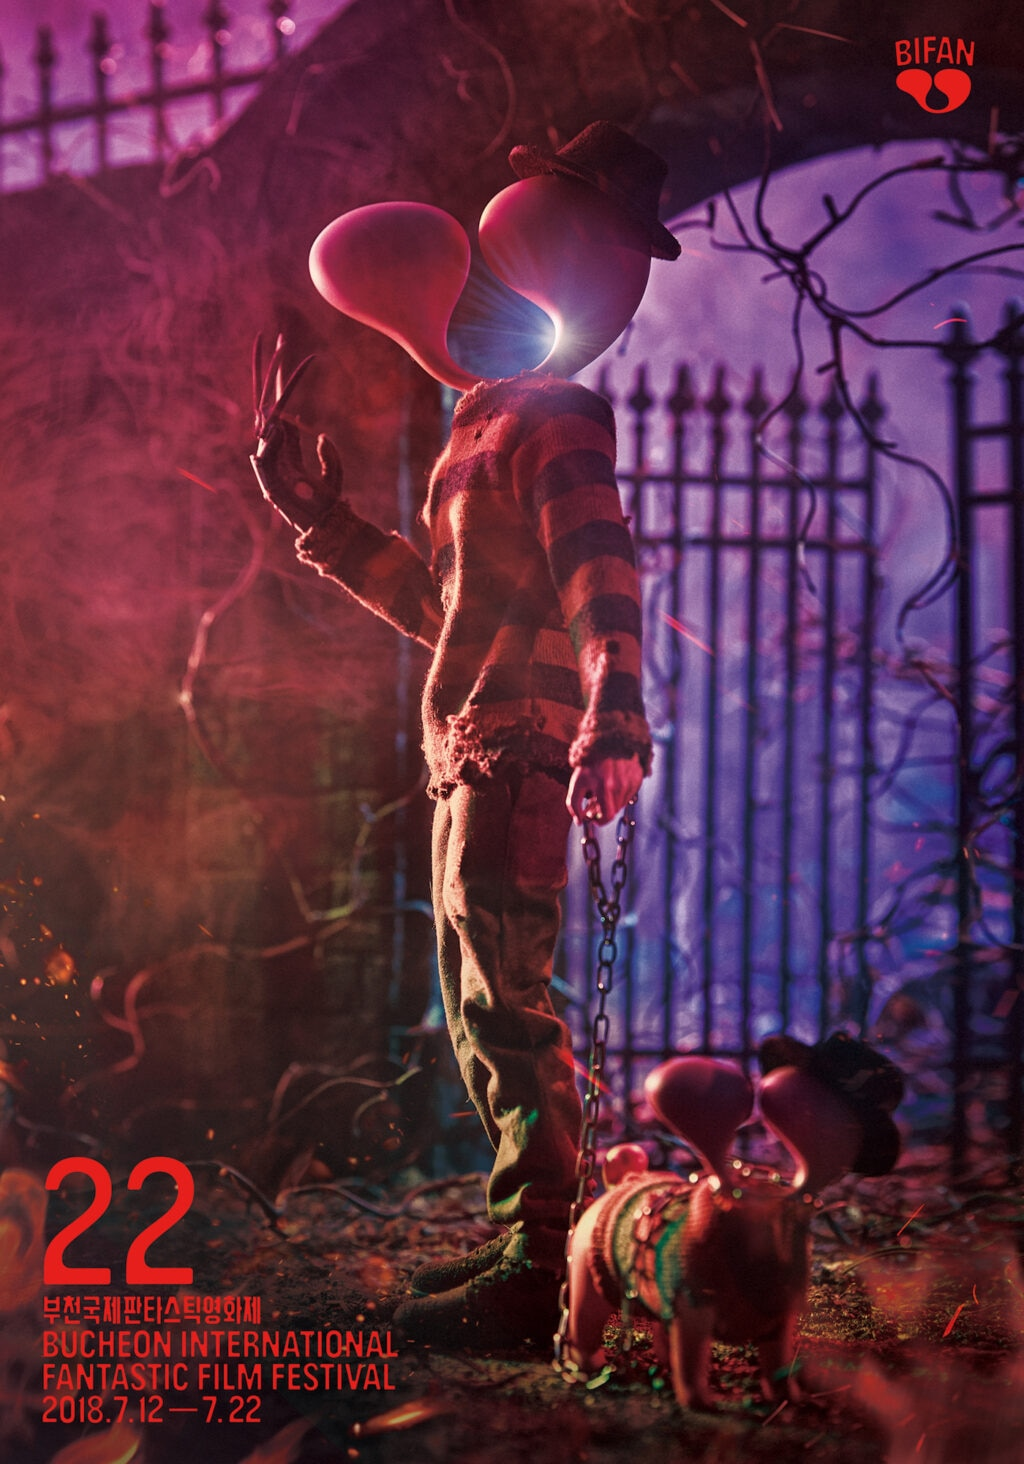 22nd BIFAN Official Poster 2 1024x1464 - BIFAN 2018: Official Posters See Freddy Krueger as a Dog Owner and It's Adorable